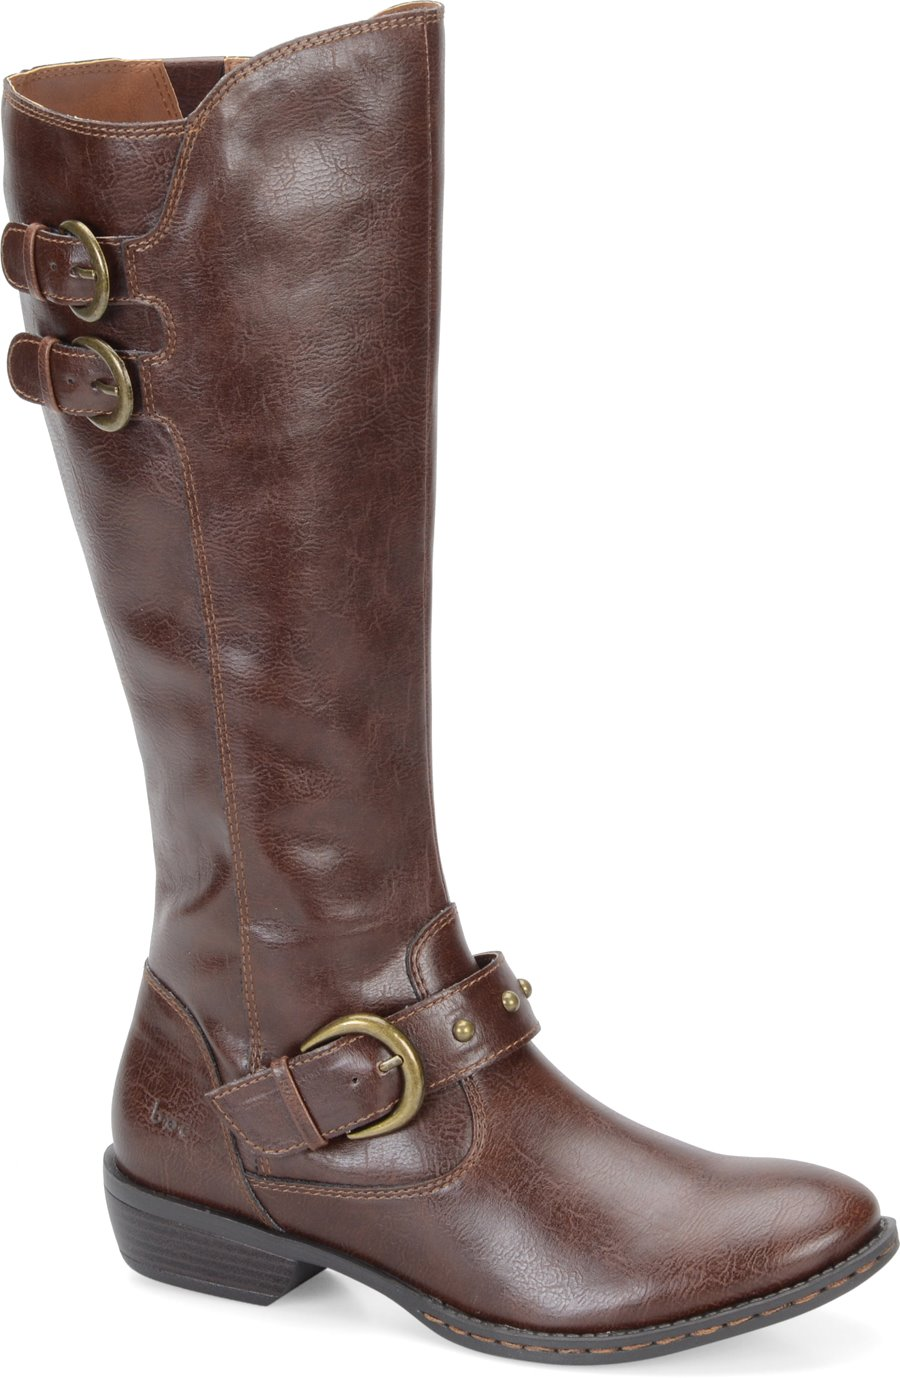 Boc Hart In Coffee Boc Womens Boots On Shoeline Com